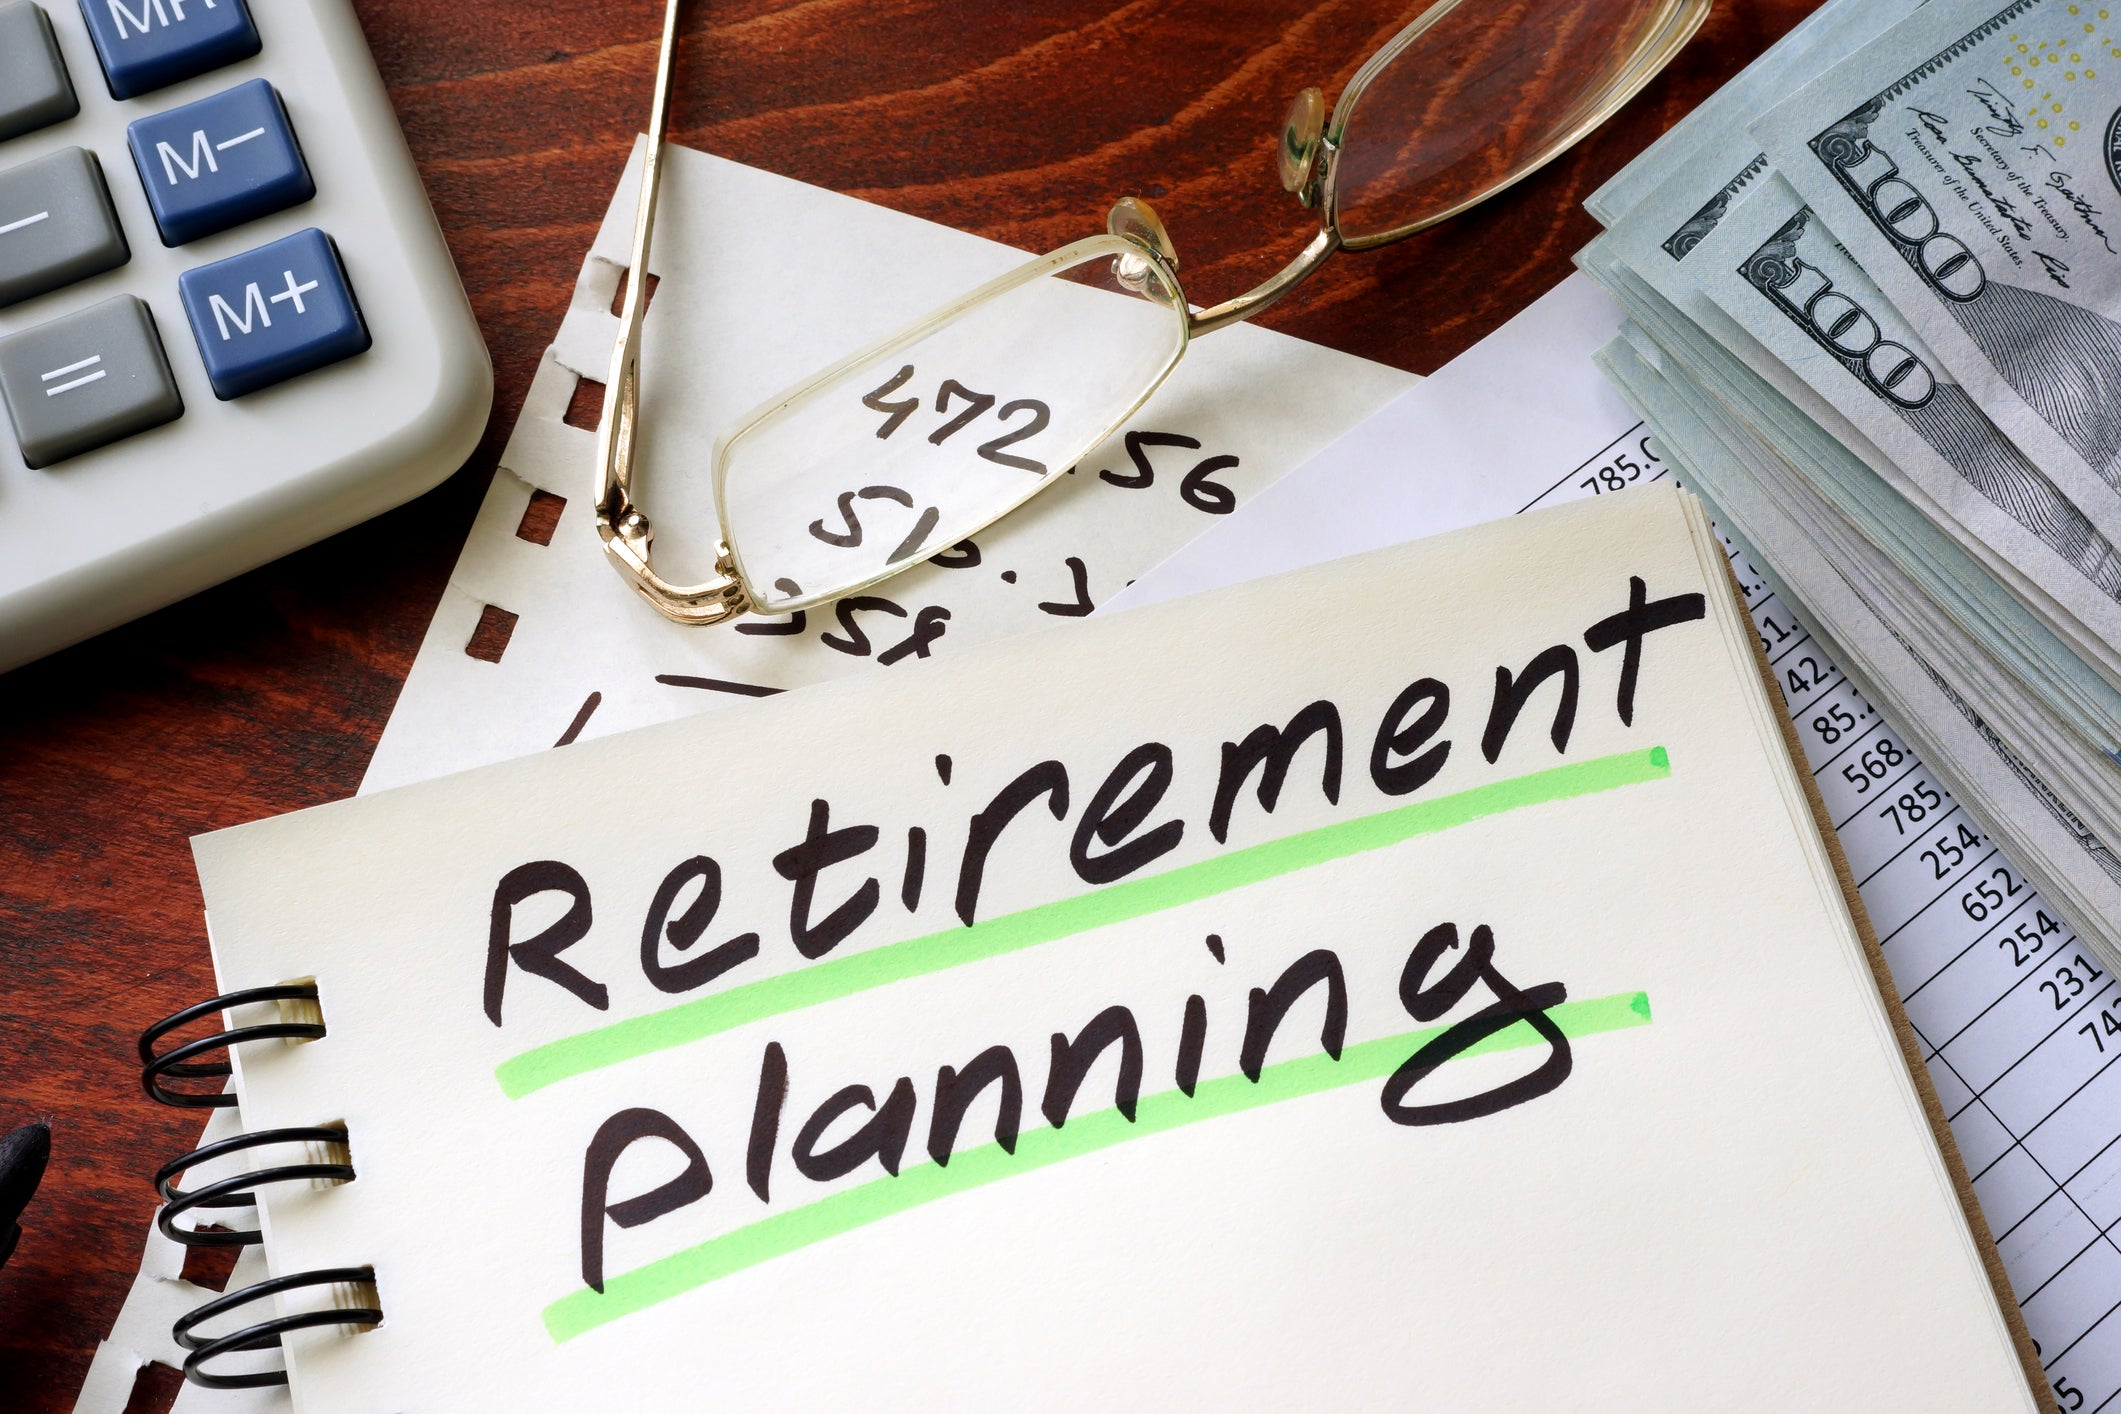 How Much Can I Contribute Annually To A Roth Ira The Motley Fool